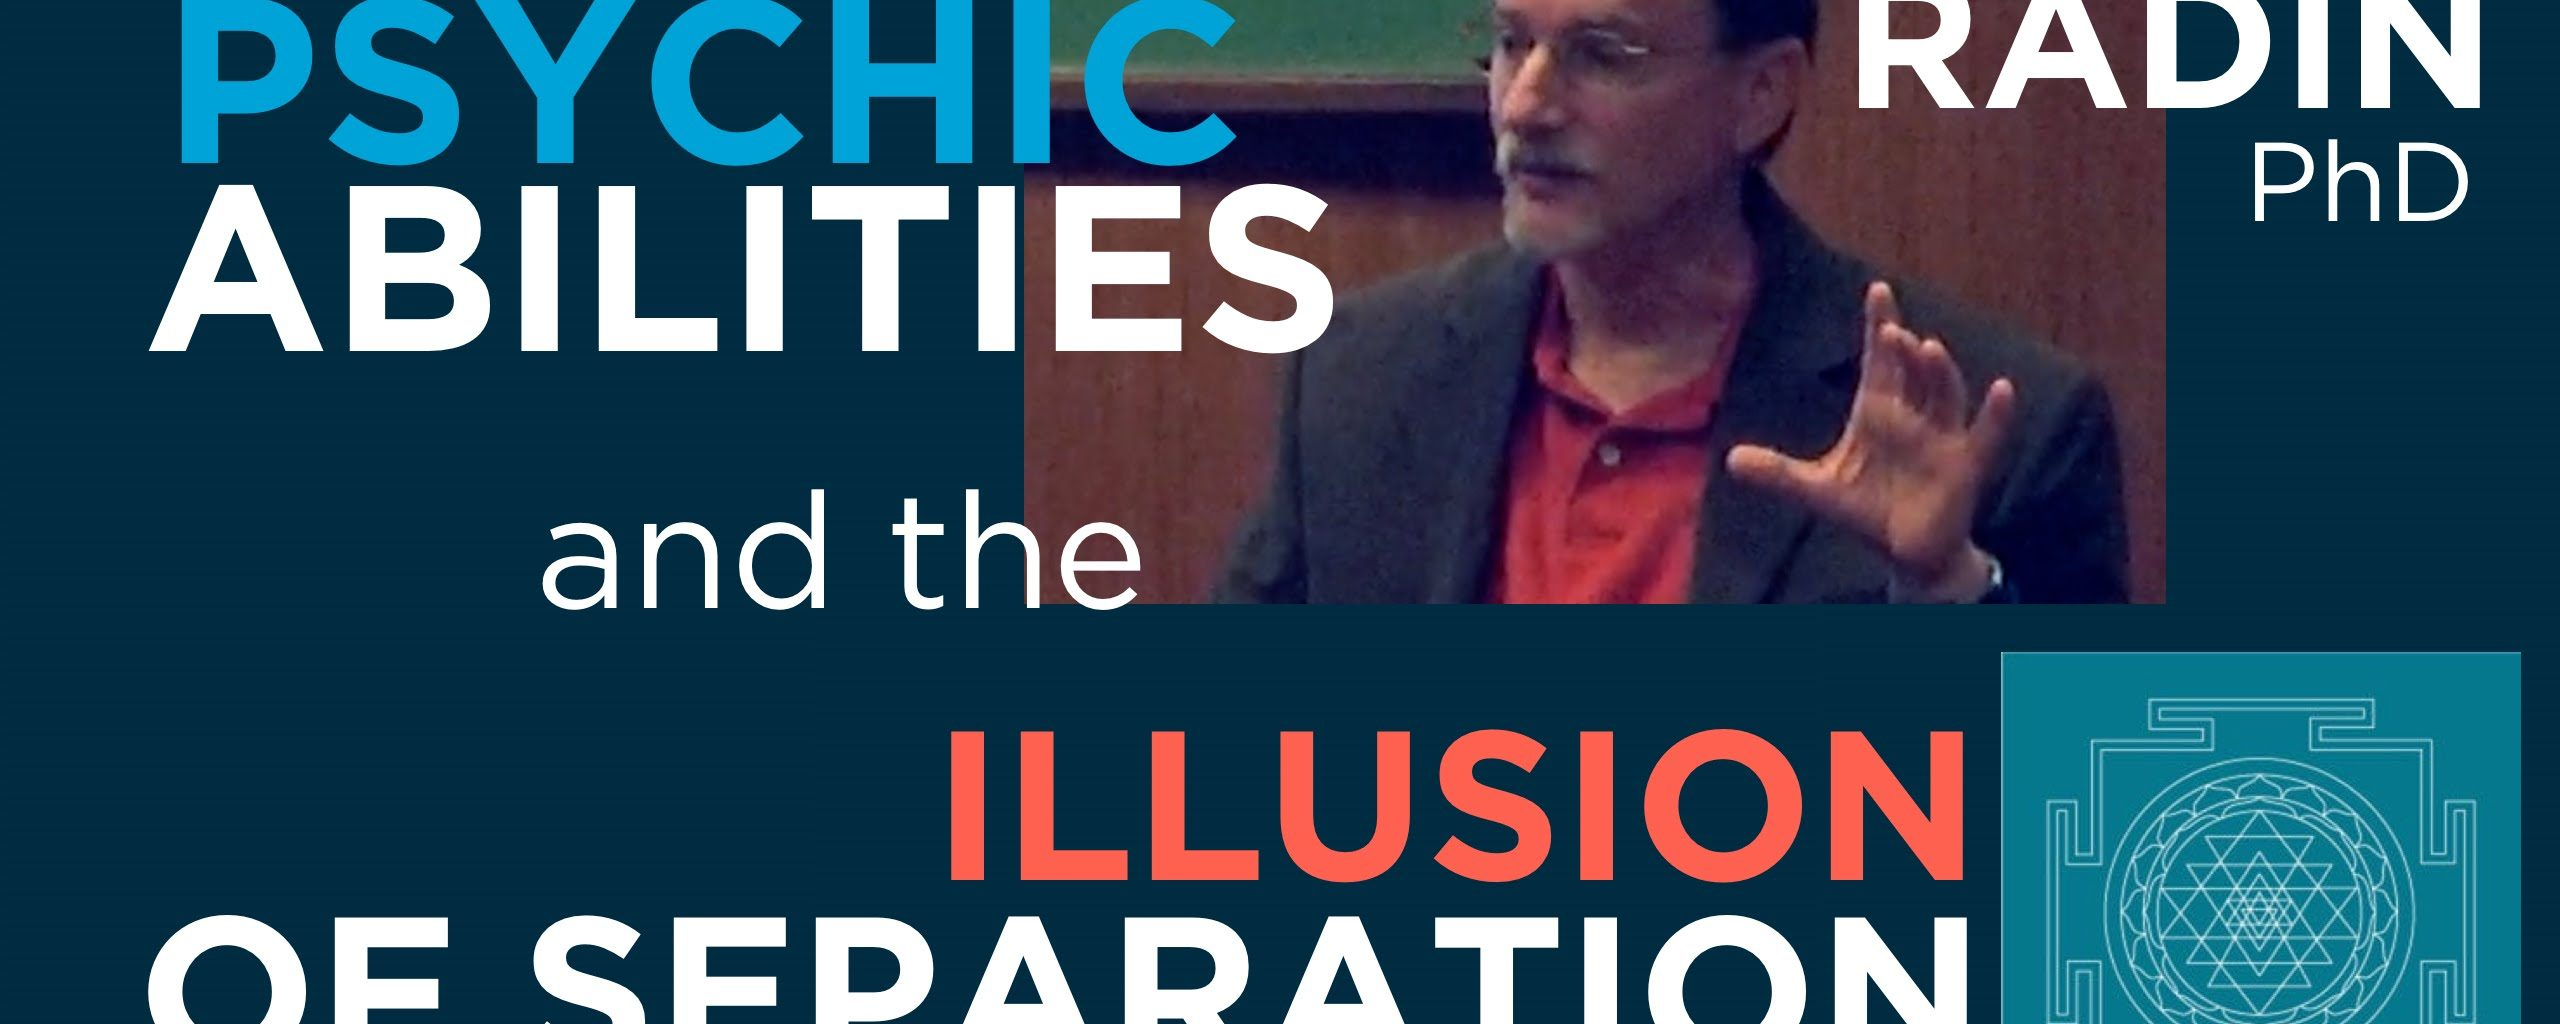 Psychic Abilities and the Illusion of Separation – Dean Radin PhD